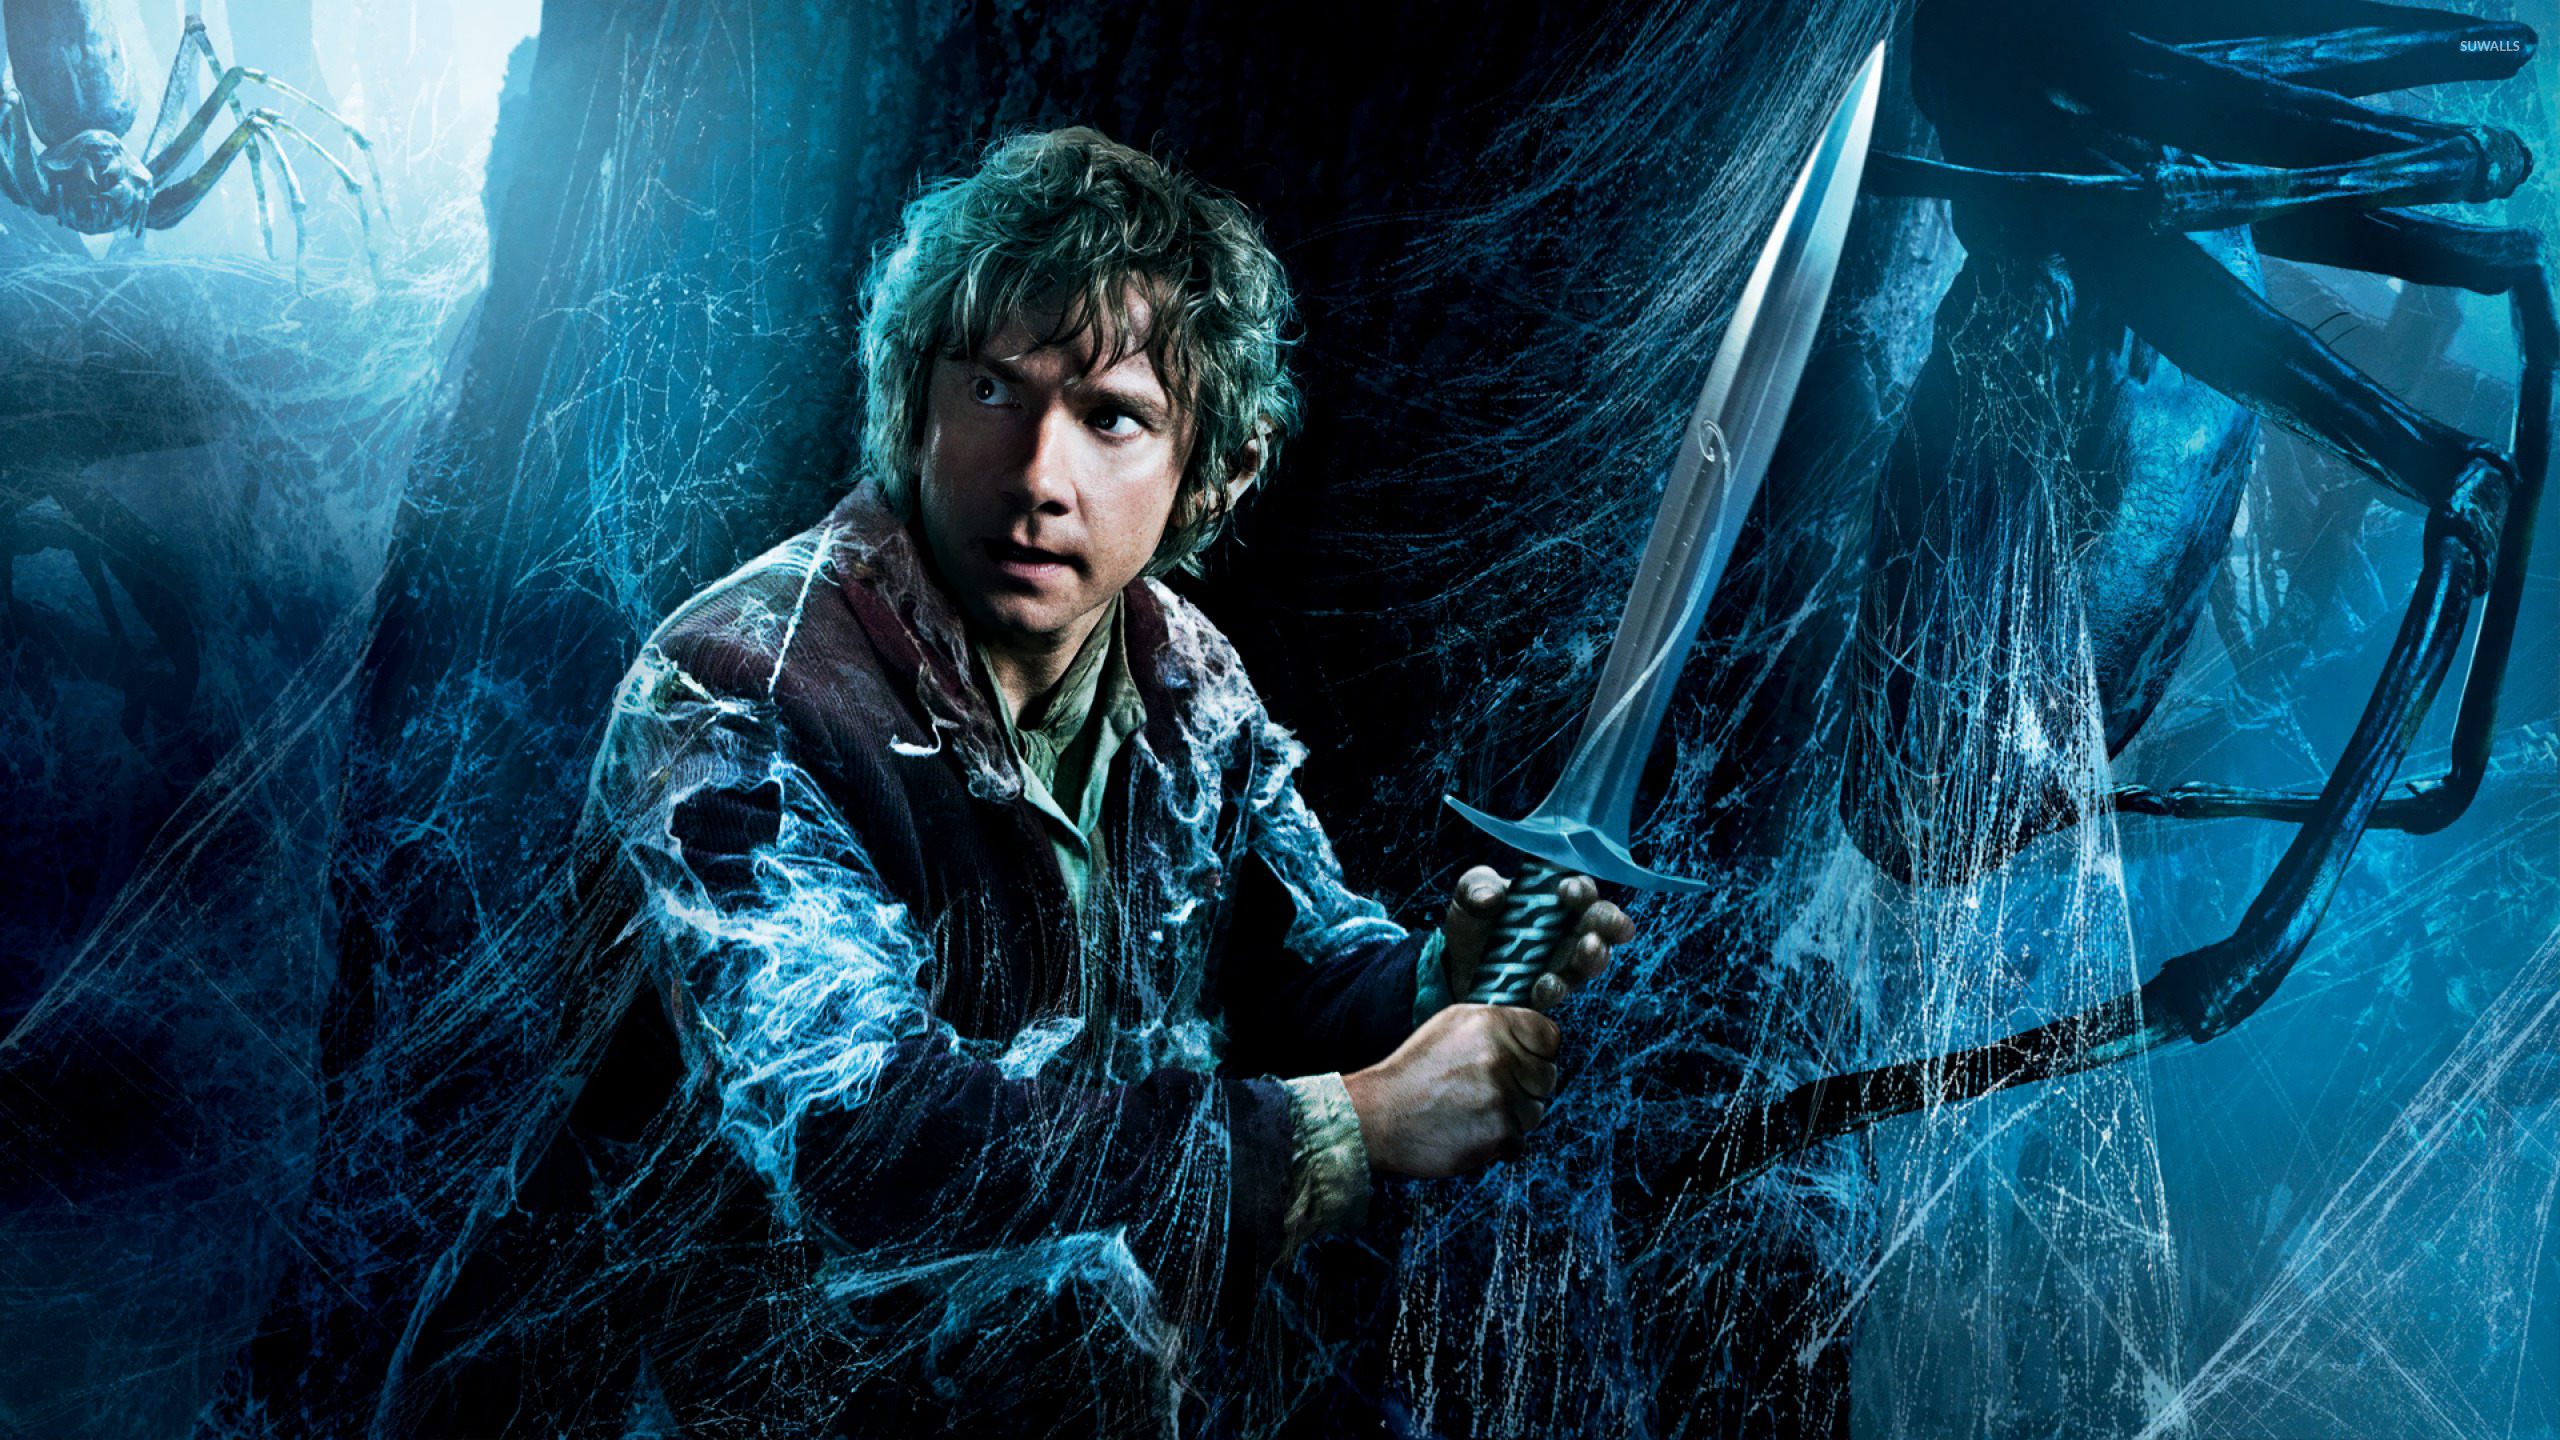 the hobbit wallpaper generator